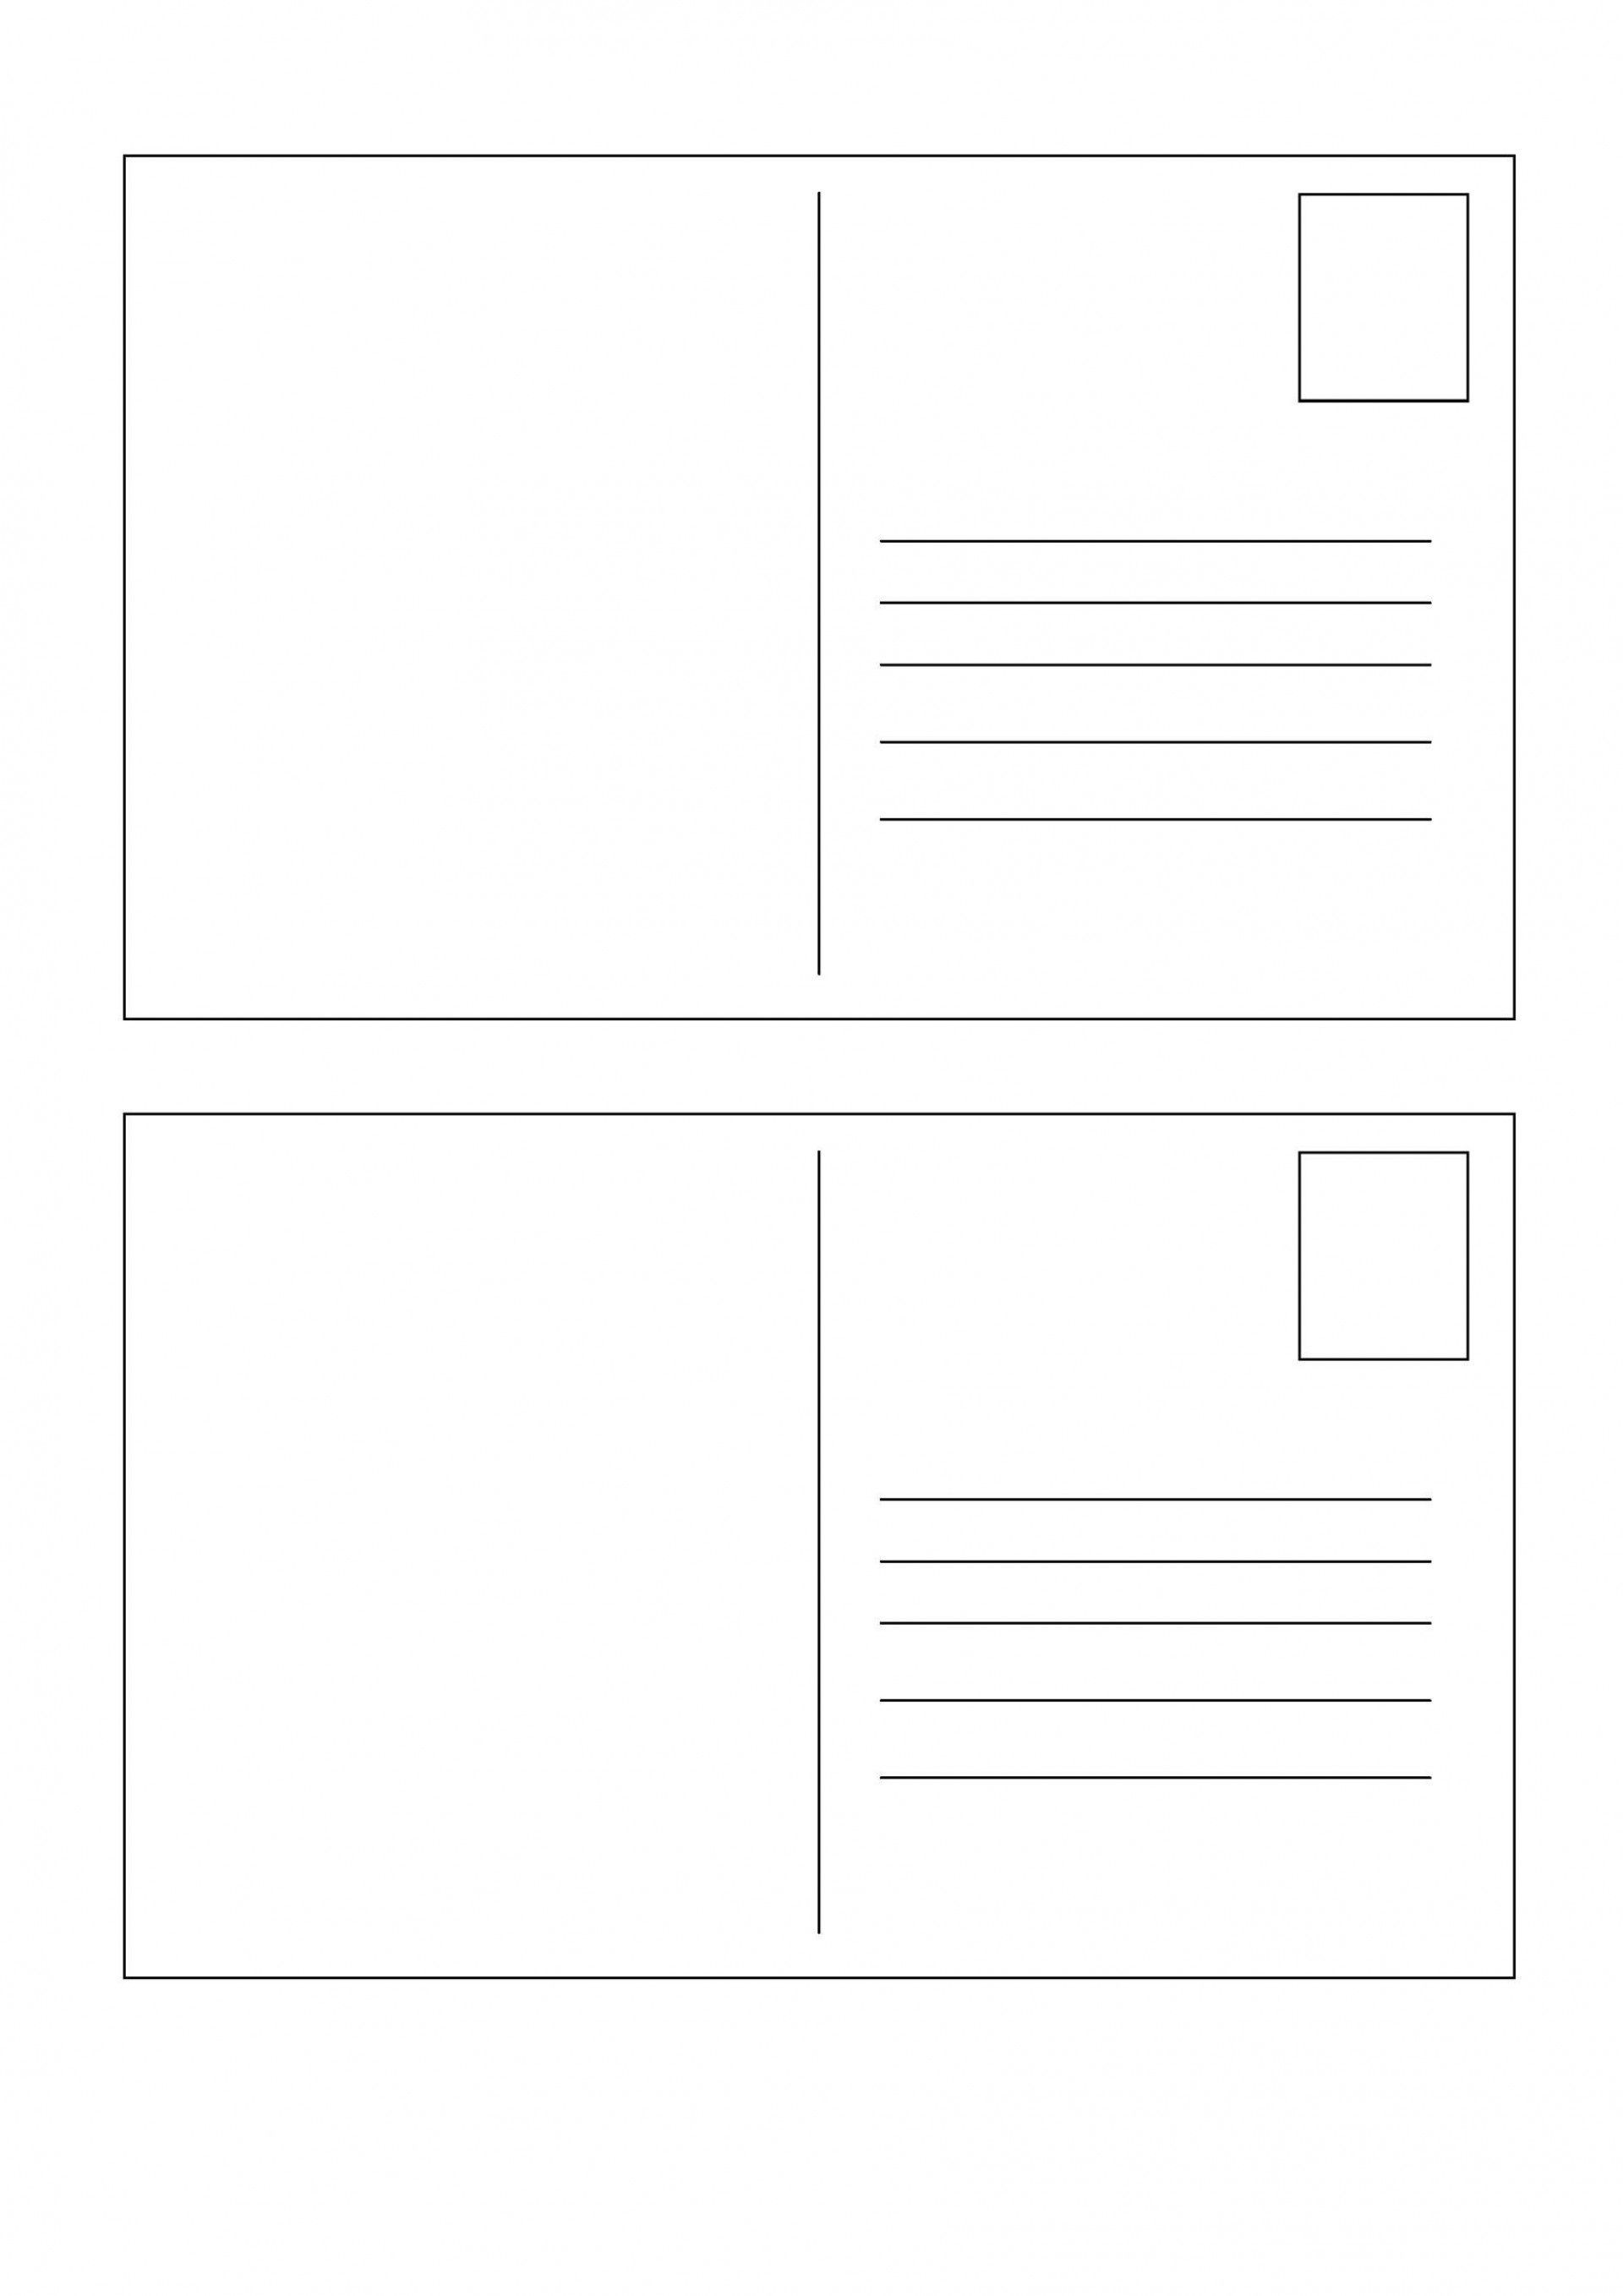 004 Dreaded Rsvp Postcard Template For Word Example 1920